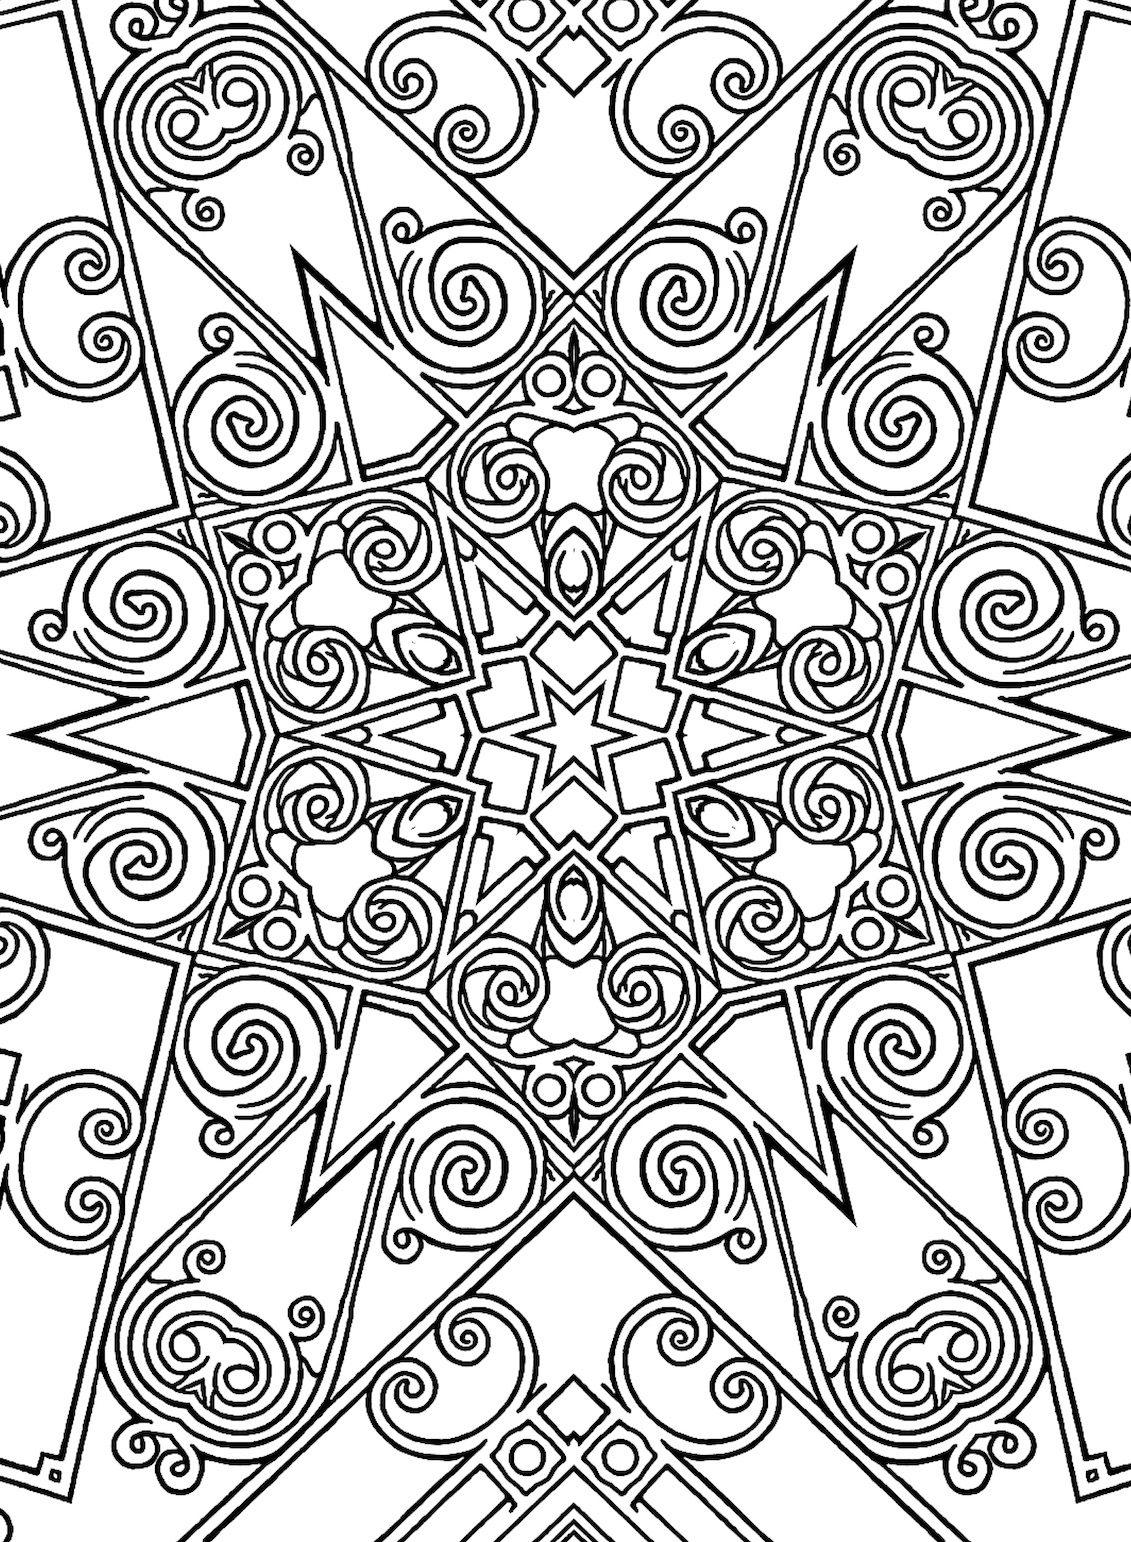 - 99: A Geometric Stress-Relief Coloring Book • Allie Vane